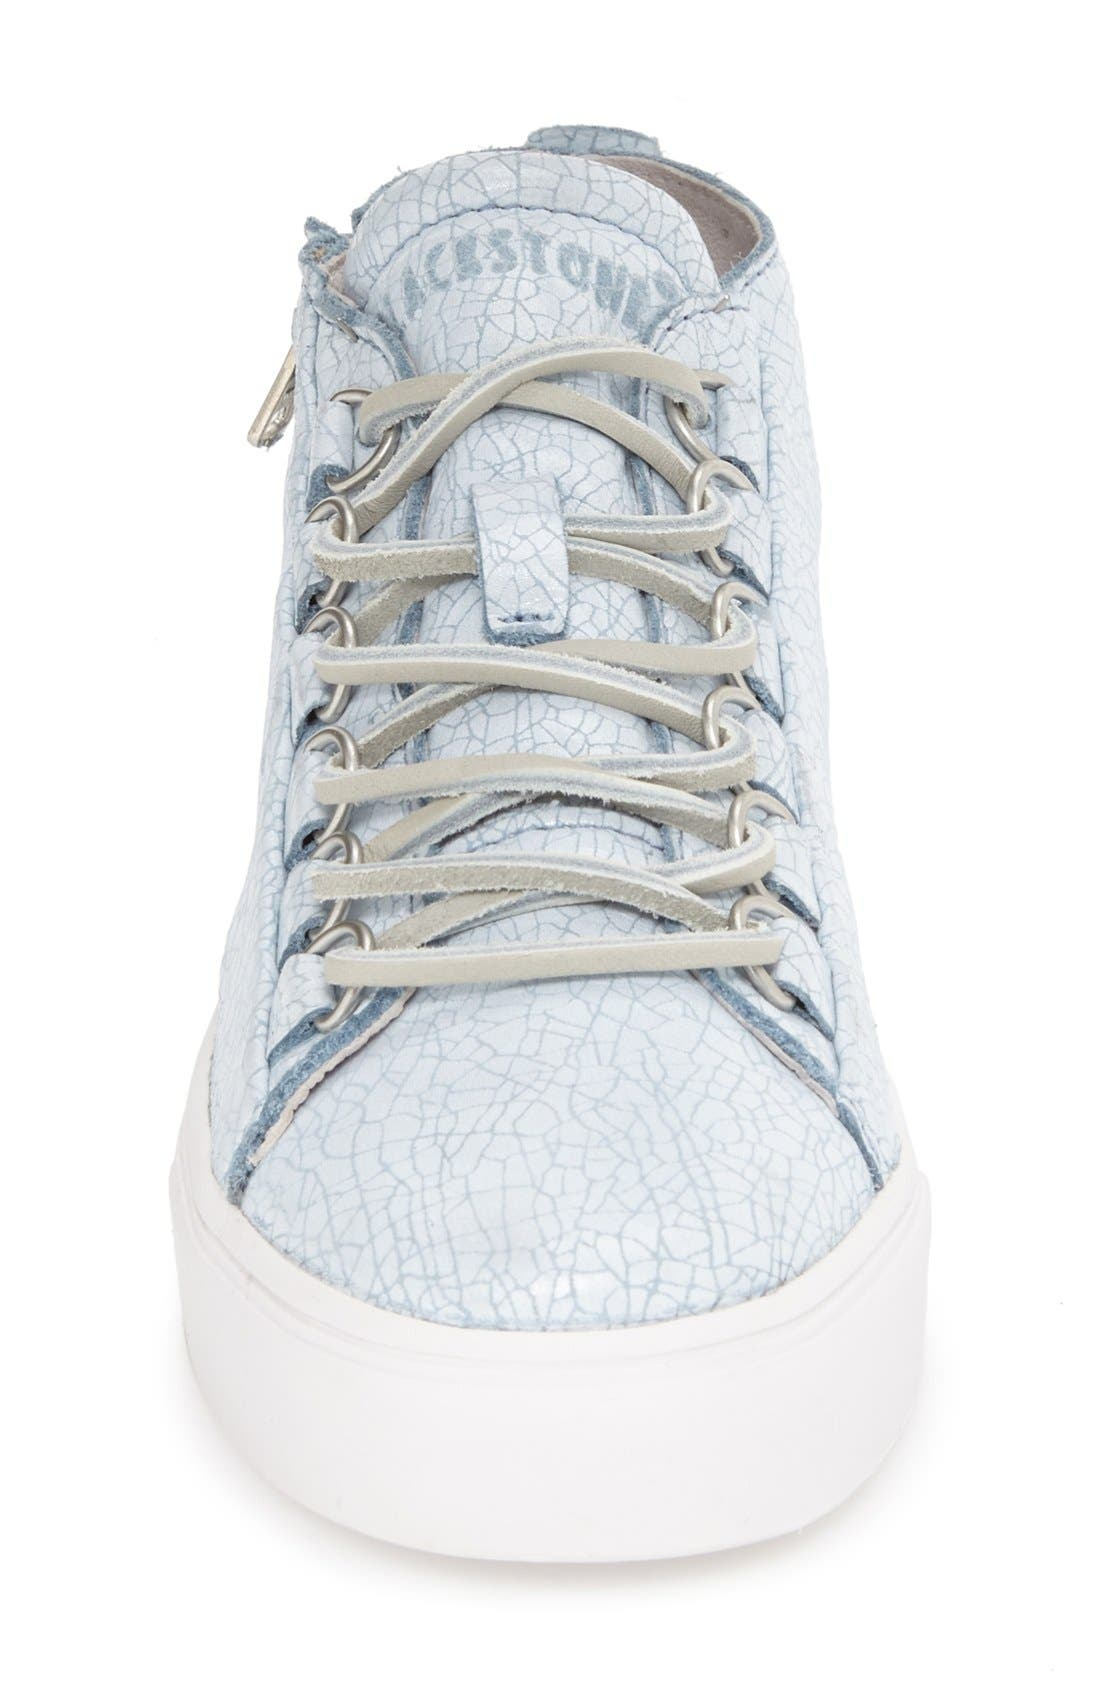 'LL60' Midi Sneaker,                             Alternate thumbnail 3, color,                             BLUE/ WHITE LEATHER